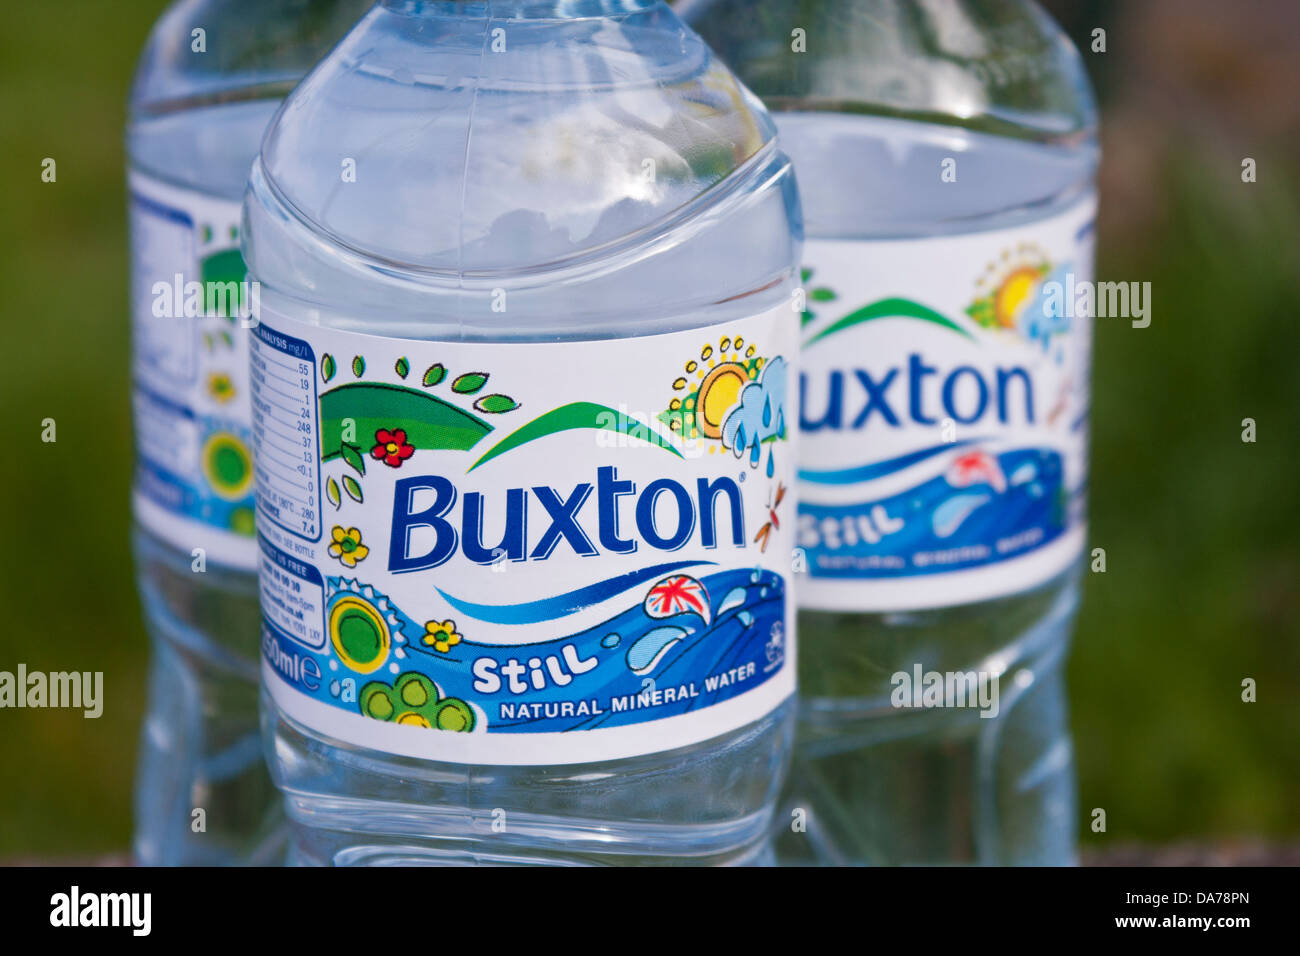 Close-up of three still natural mineral water bottles. Detail and focus on one label. - Stock Image